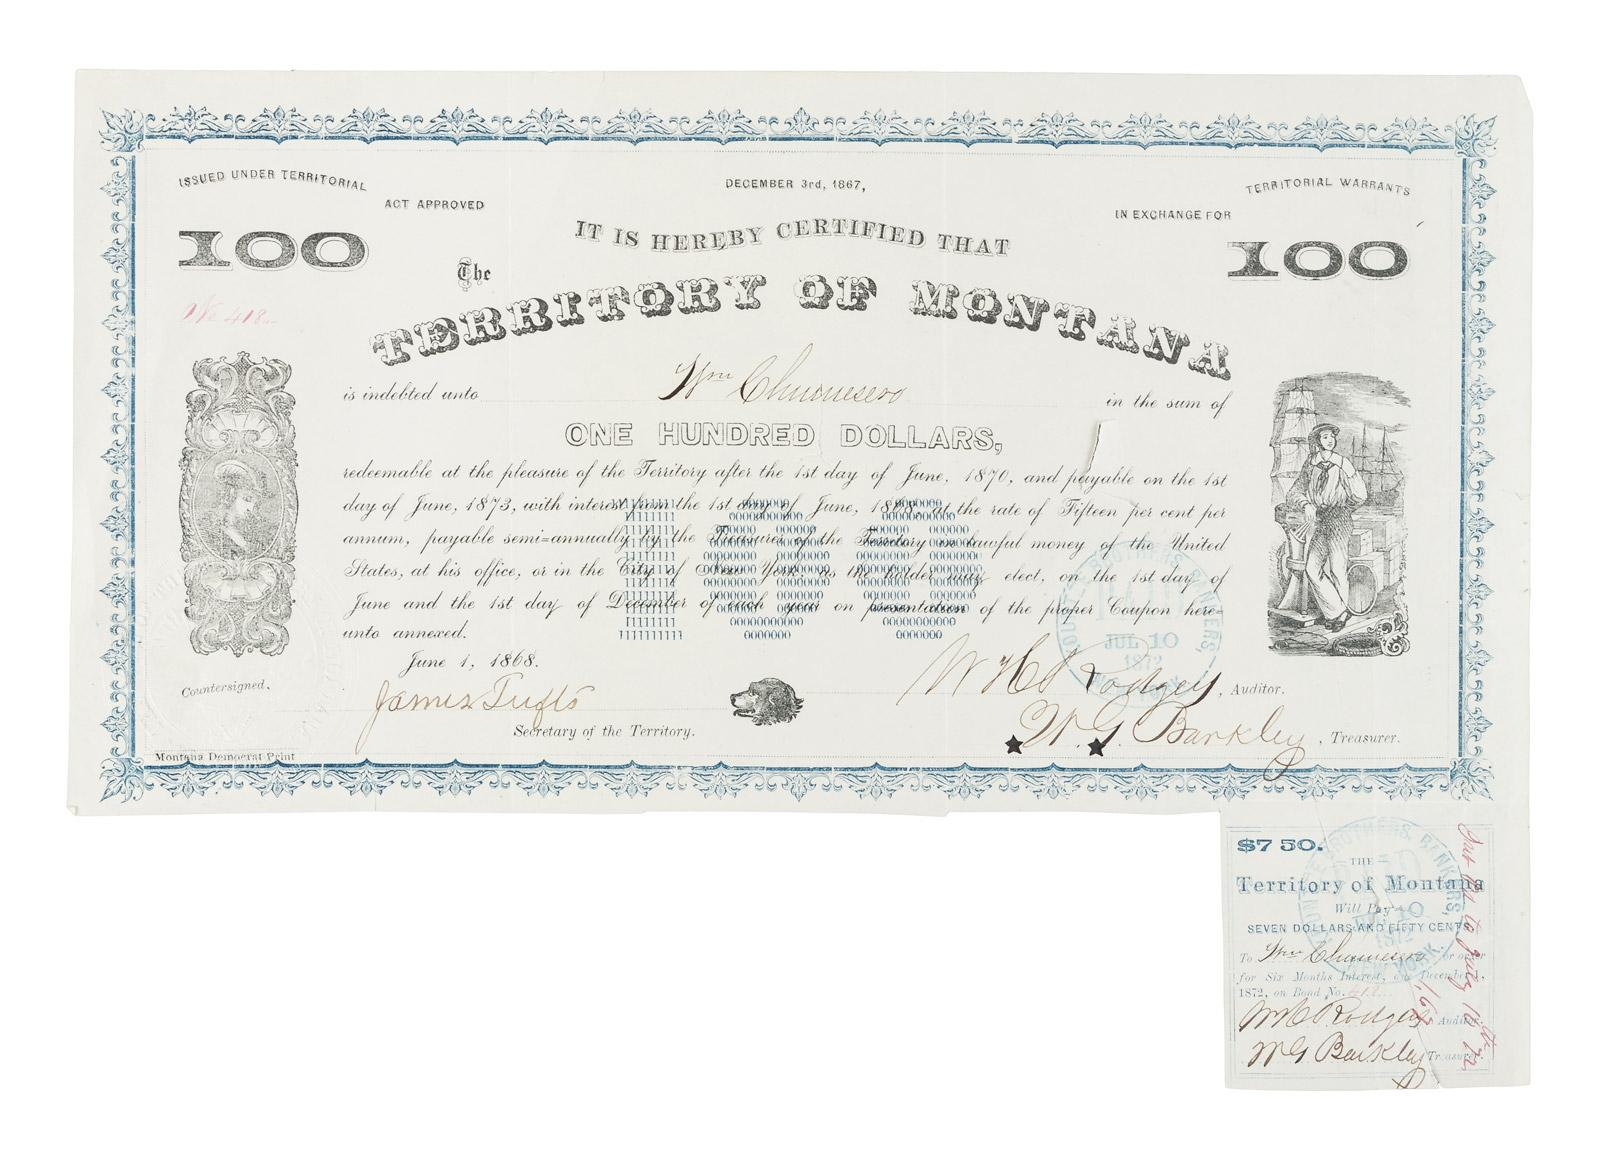 Montana Territorial Warrant for One Hundred Dollars - Price Estimate